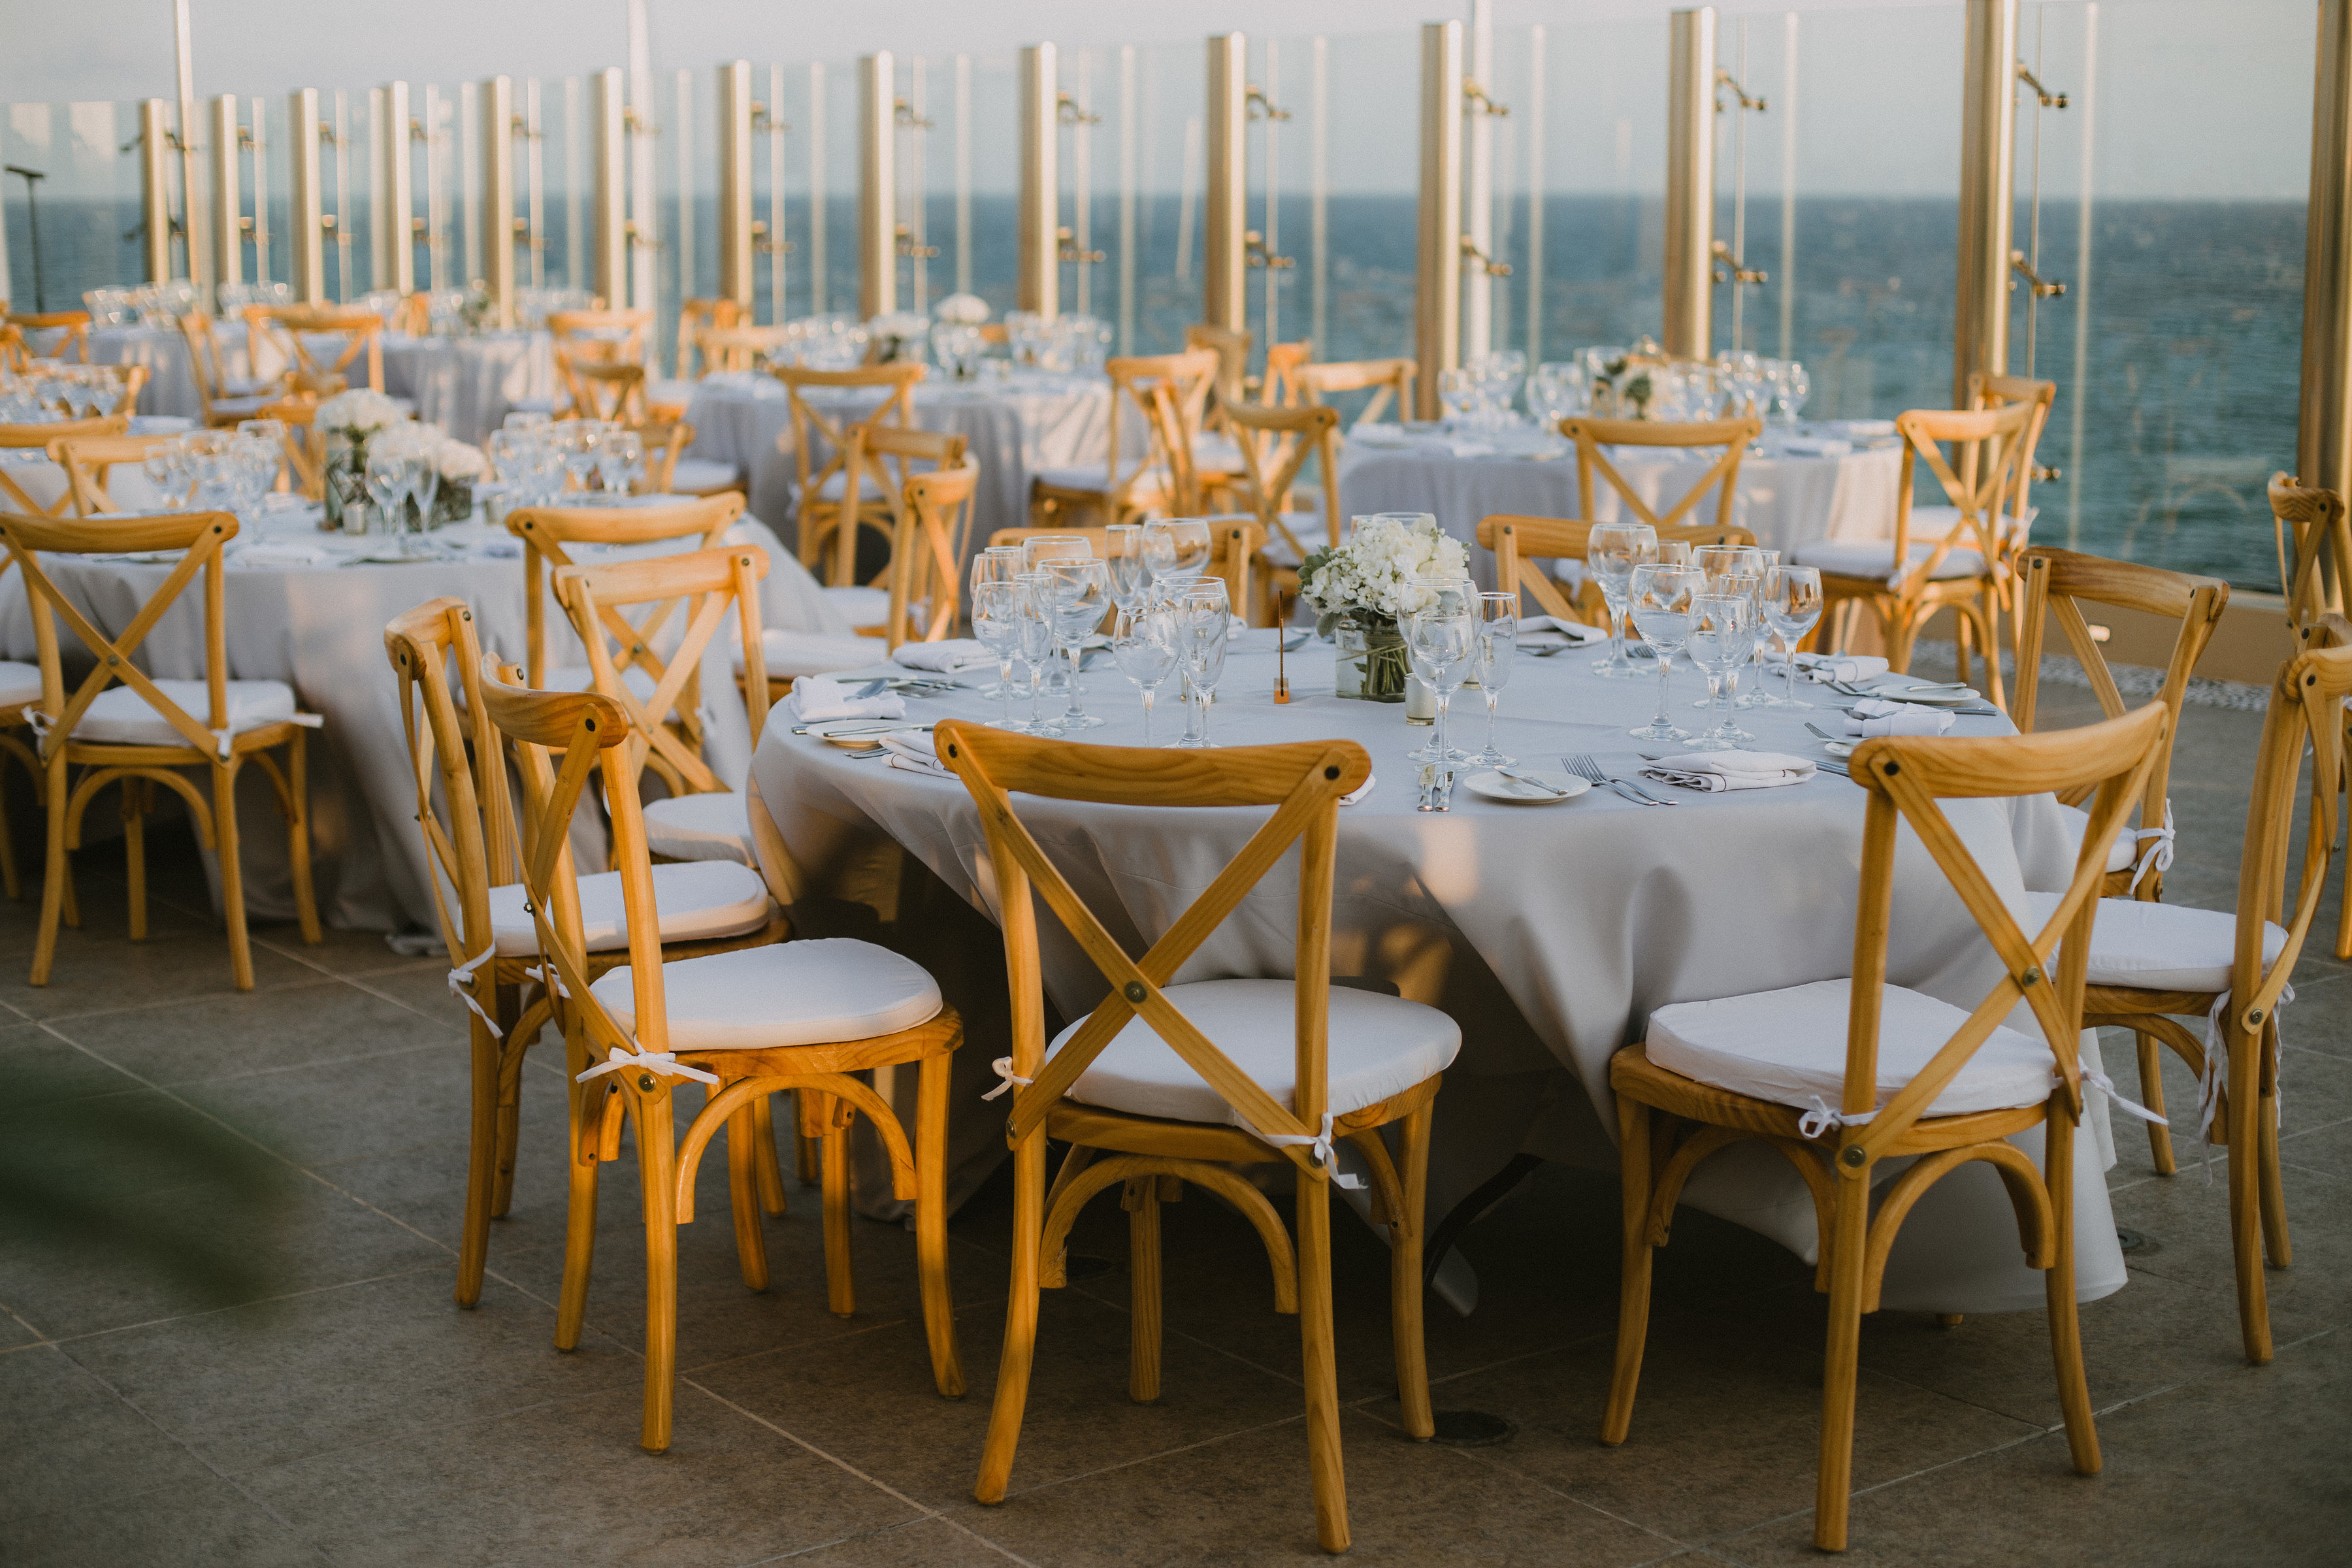 Best Destination Wedding Reception Setups of 2018